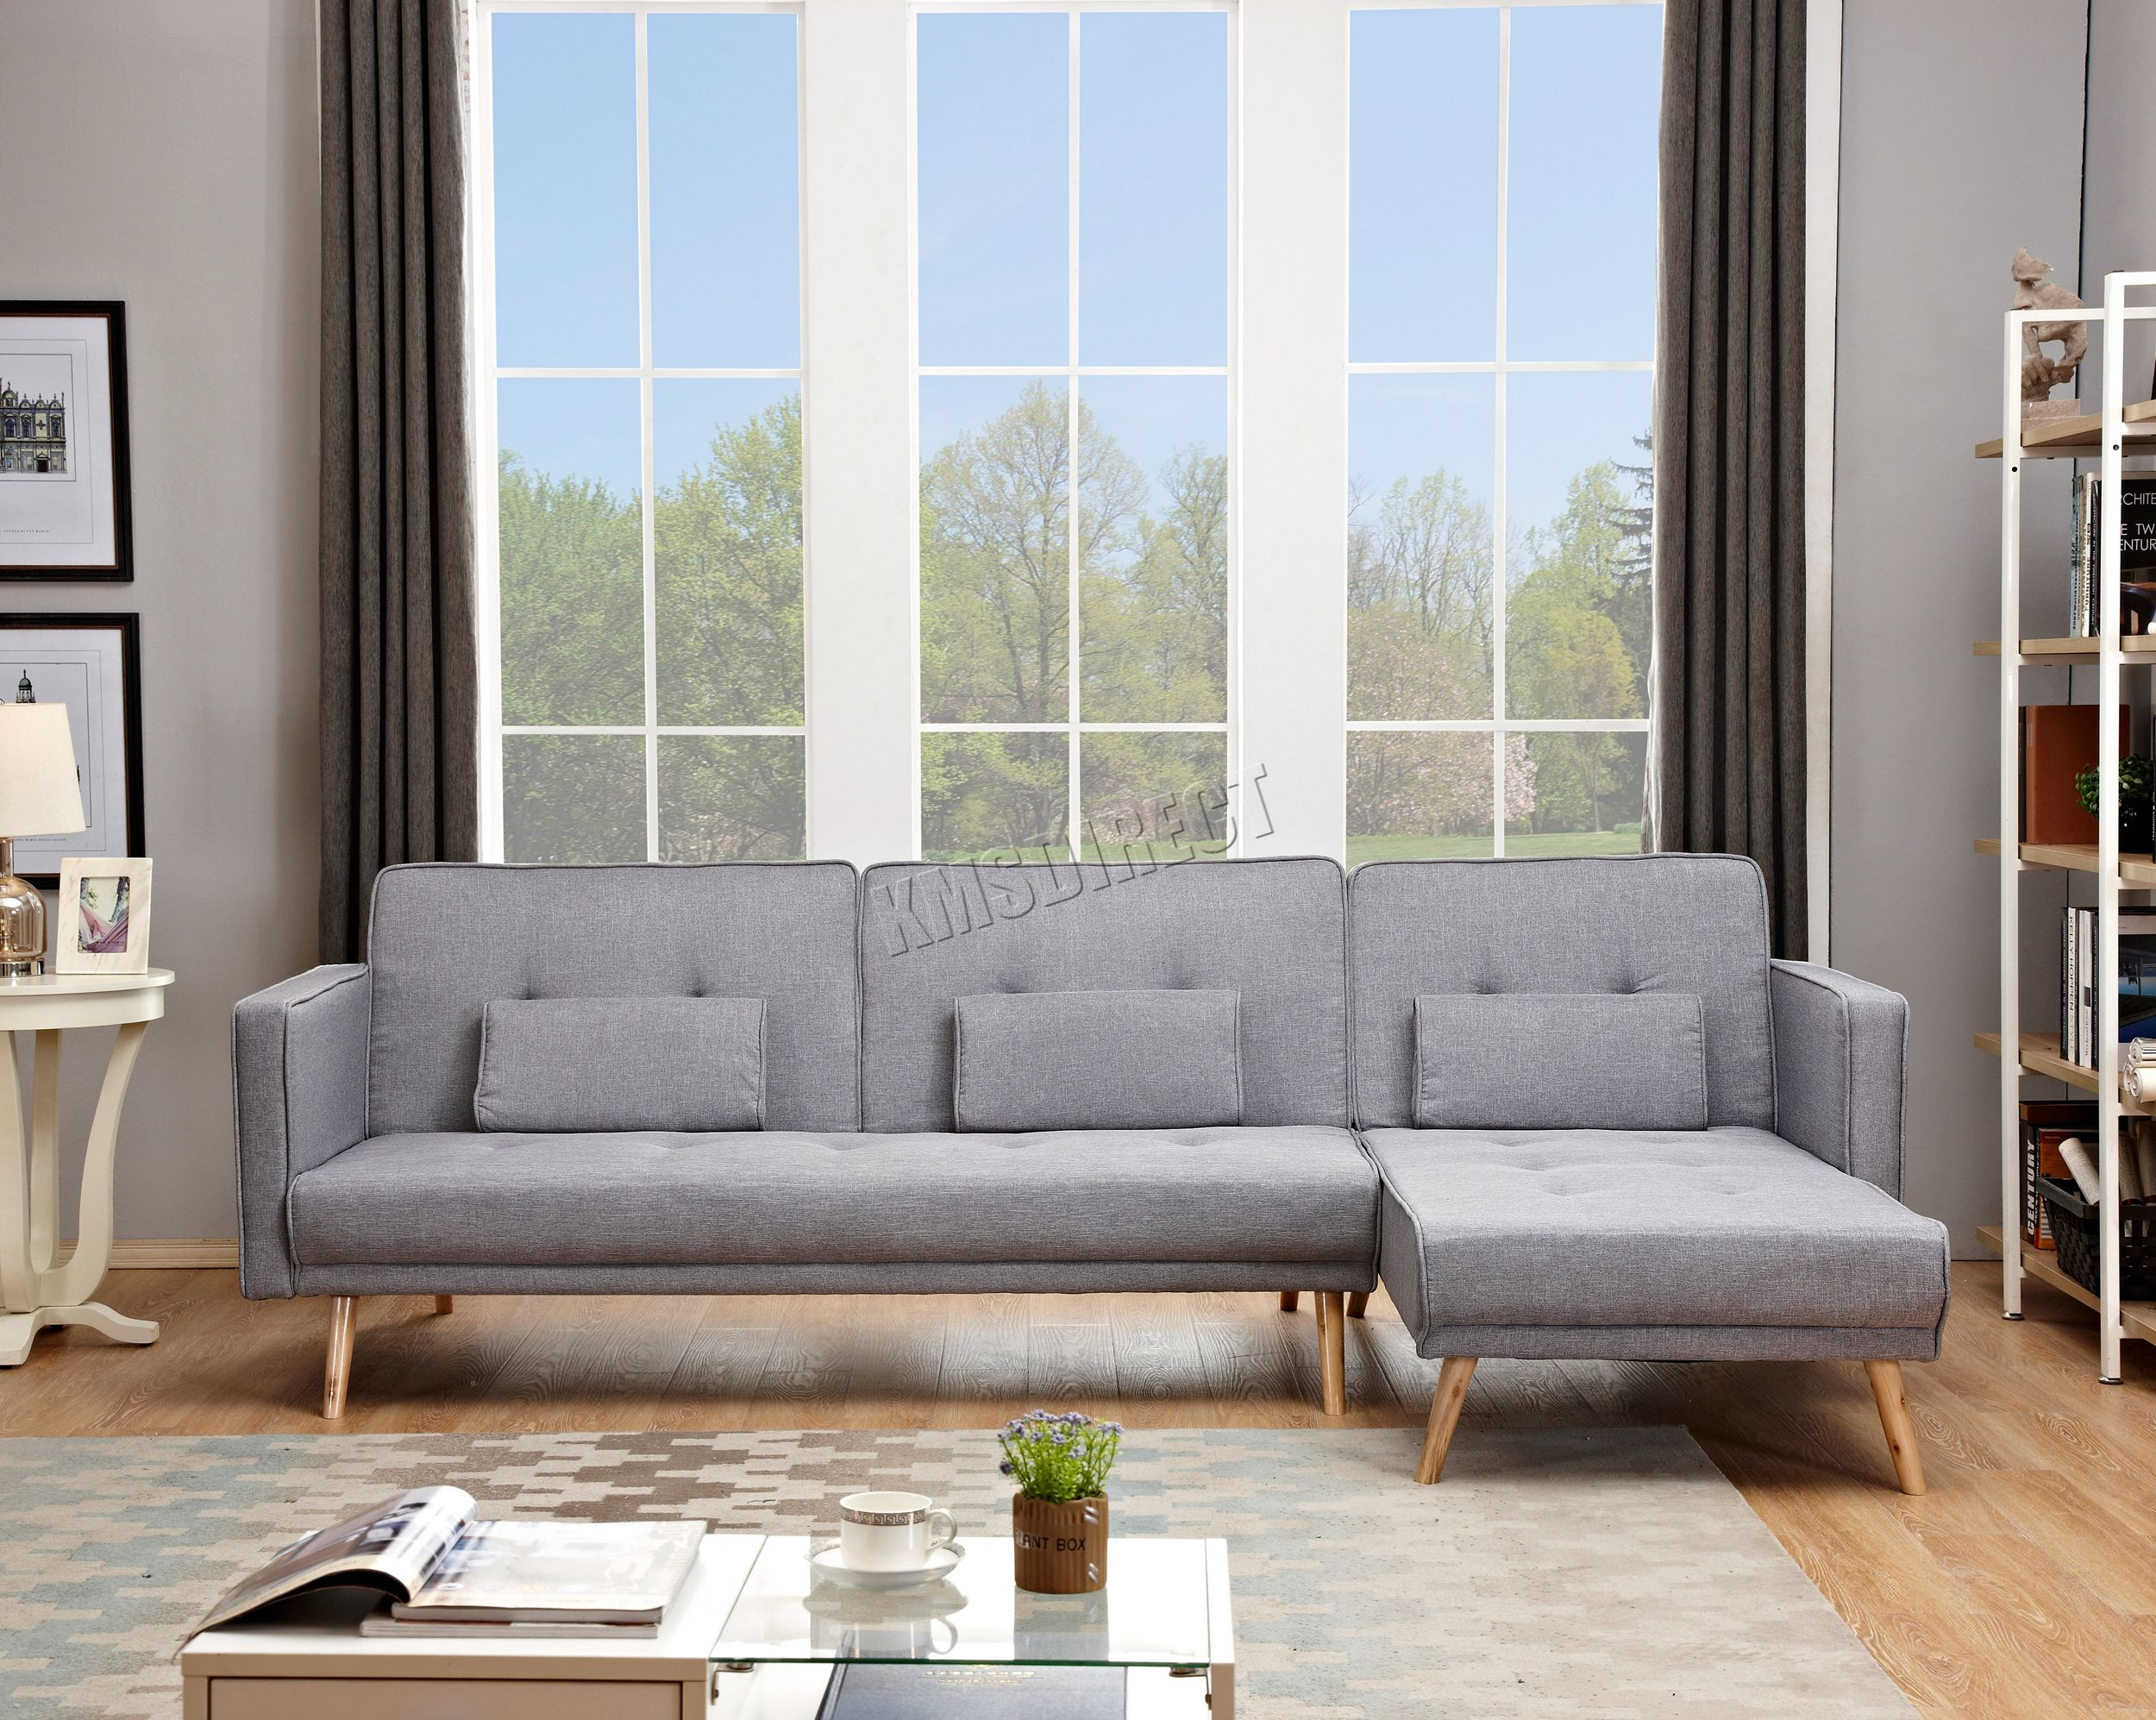 Westwood Luxury L Shape Fabric Sofa Bed Corner Couch 3 4 Seater Fsb05 Home Sofa